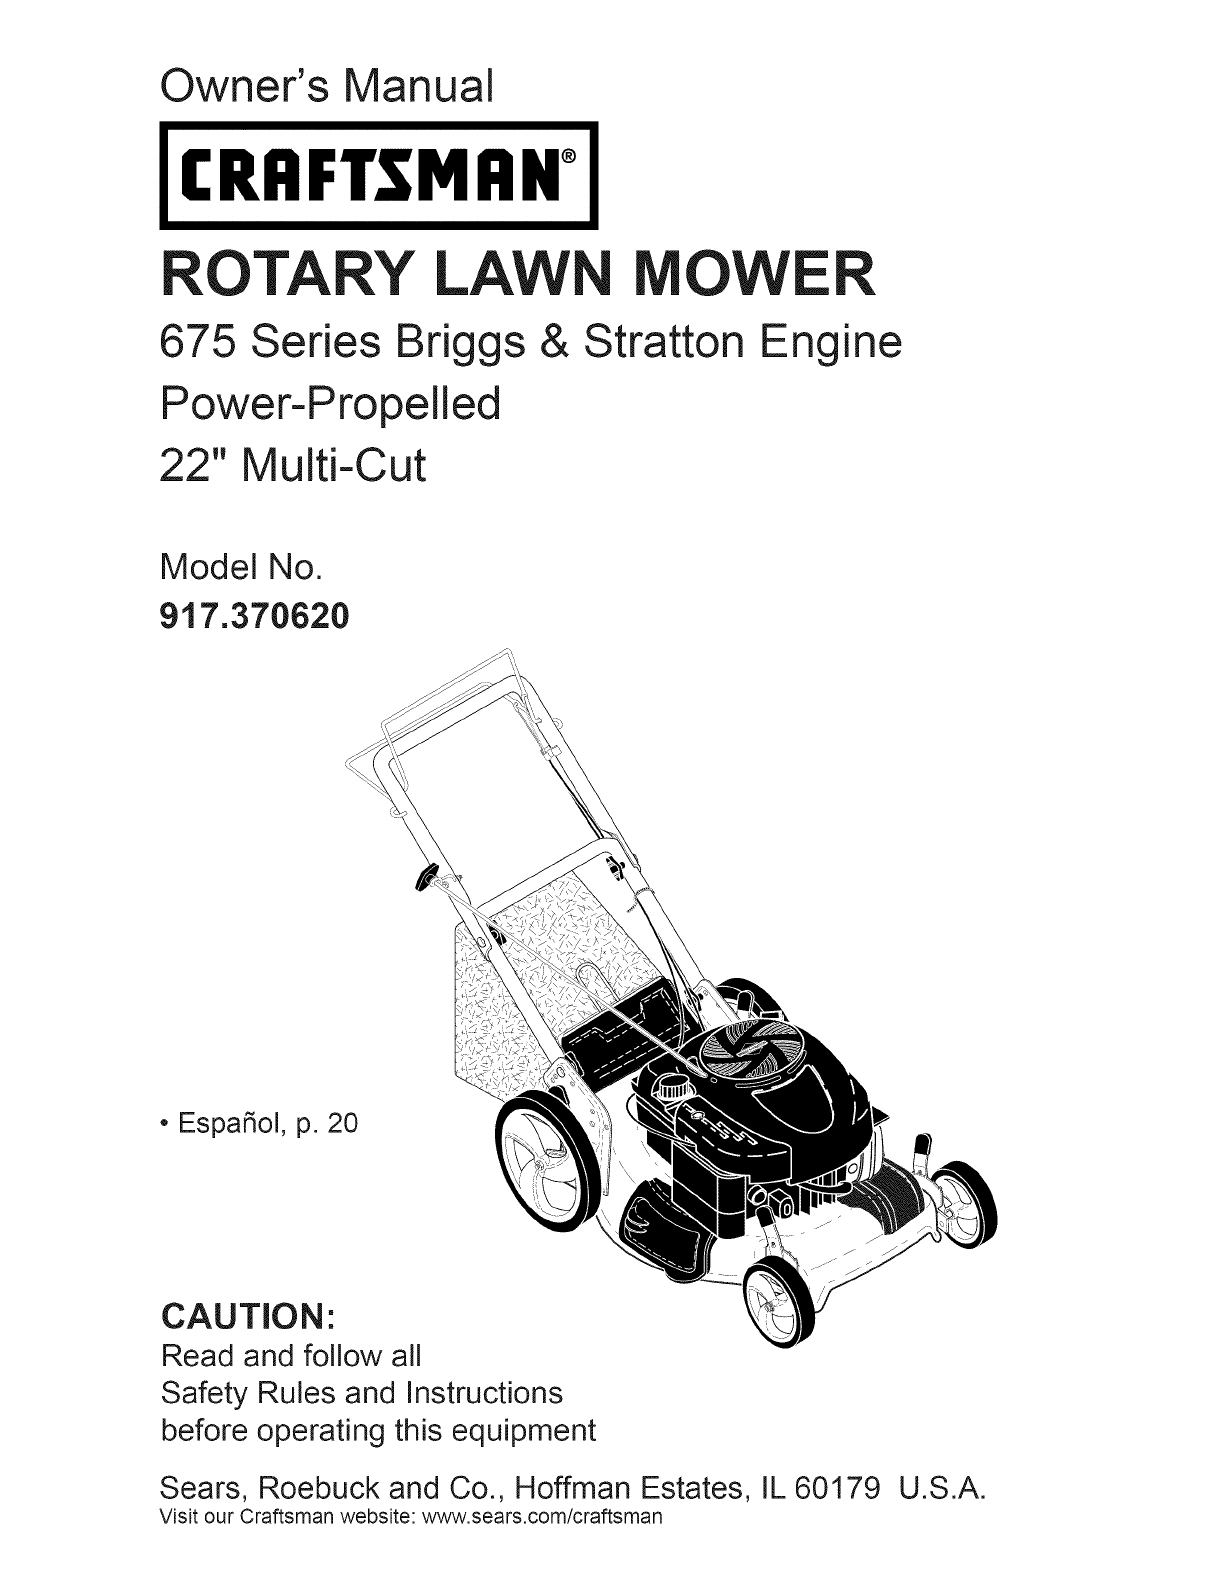 Craftsman Lawn Mower 917370620 User Guide Manualsonlinecom Wiring Diagram For Router